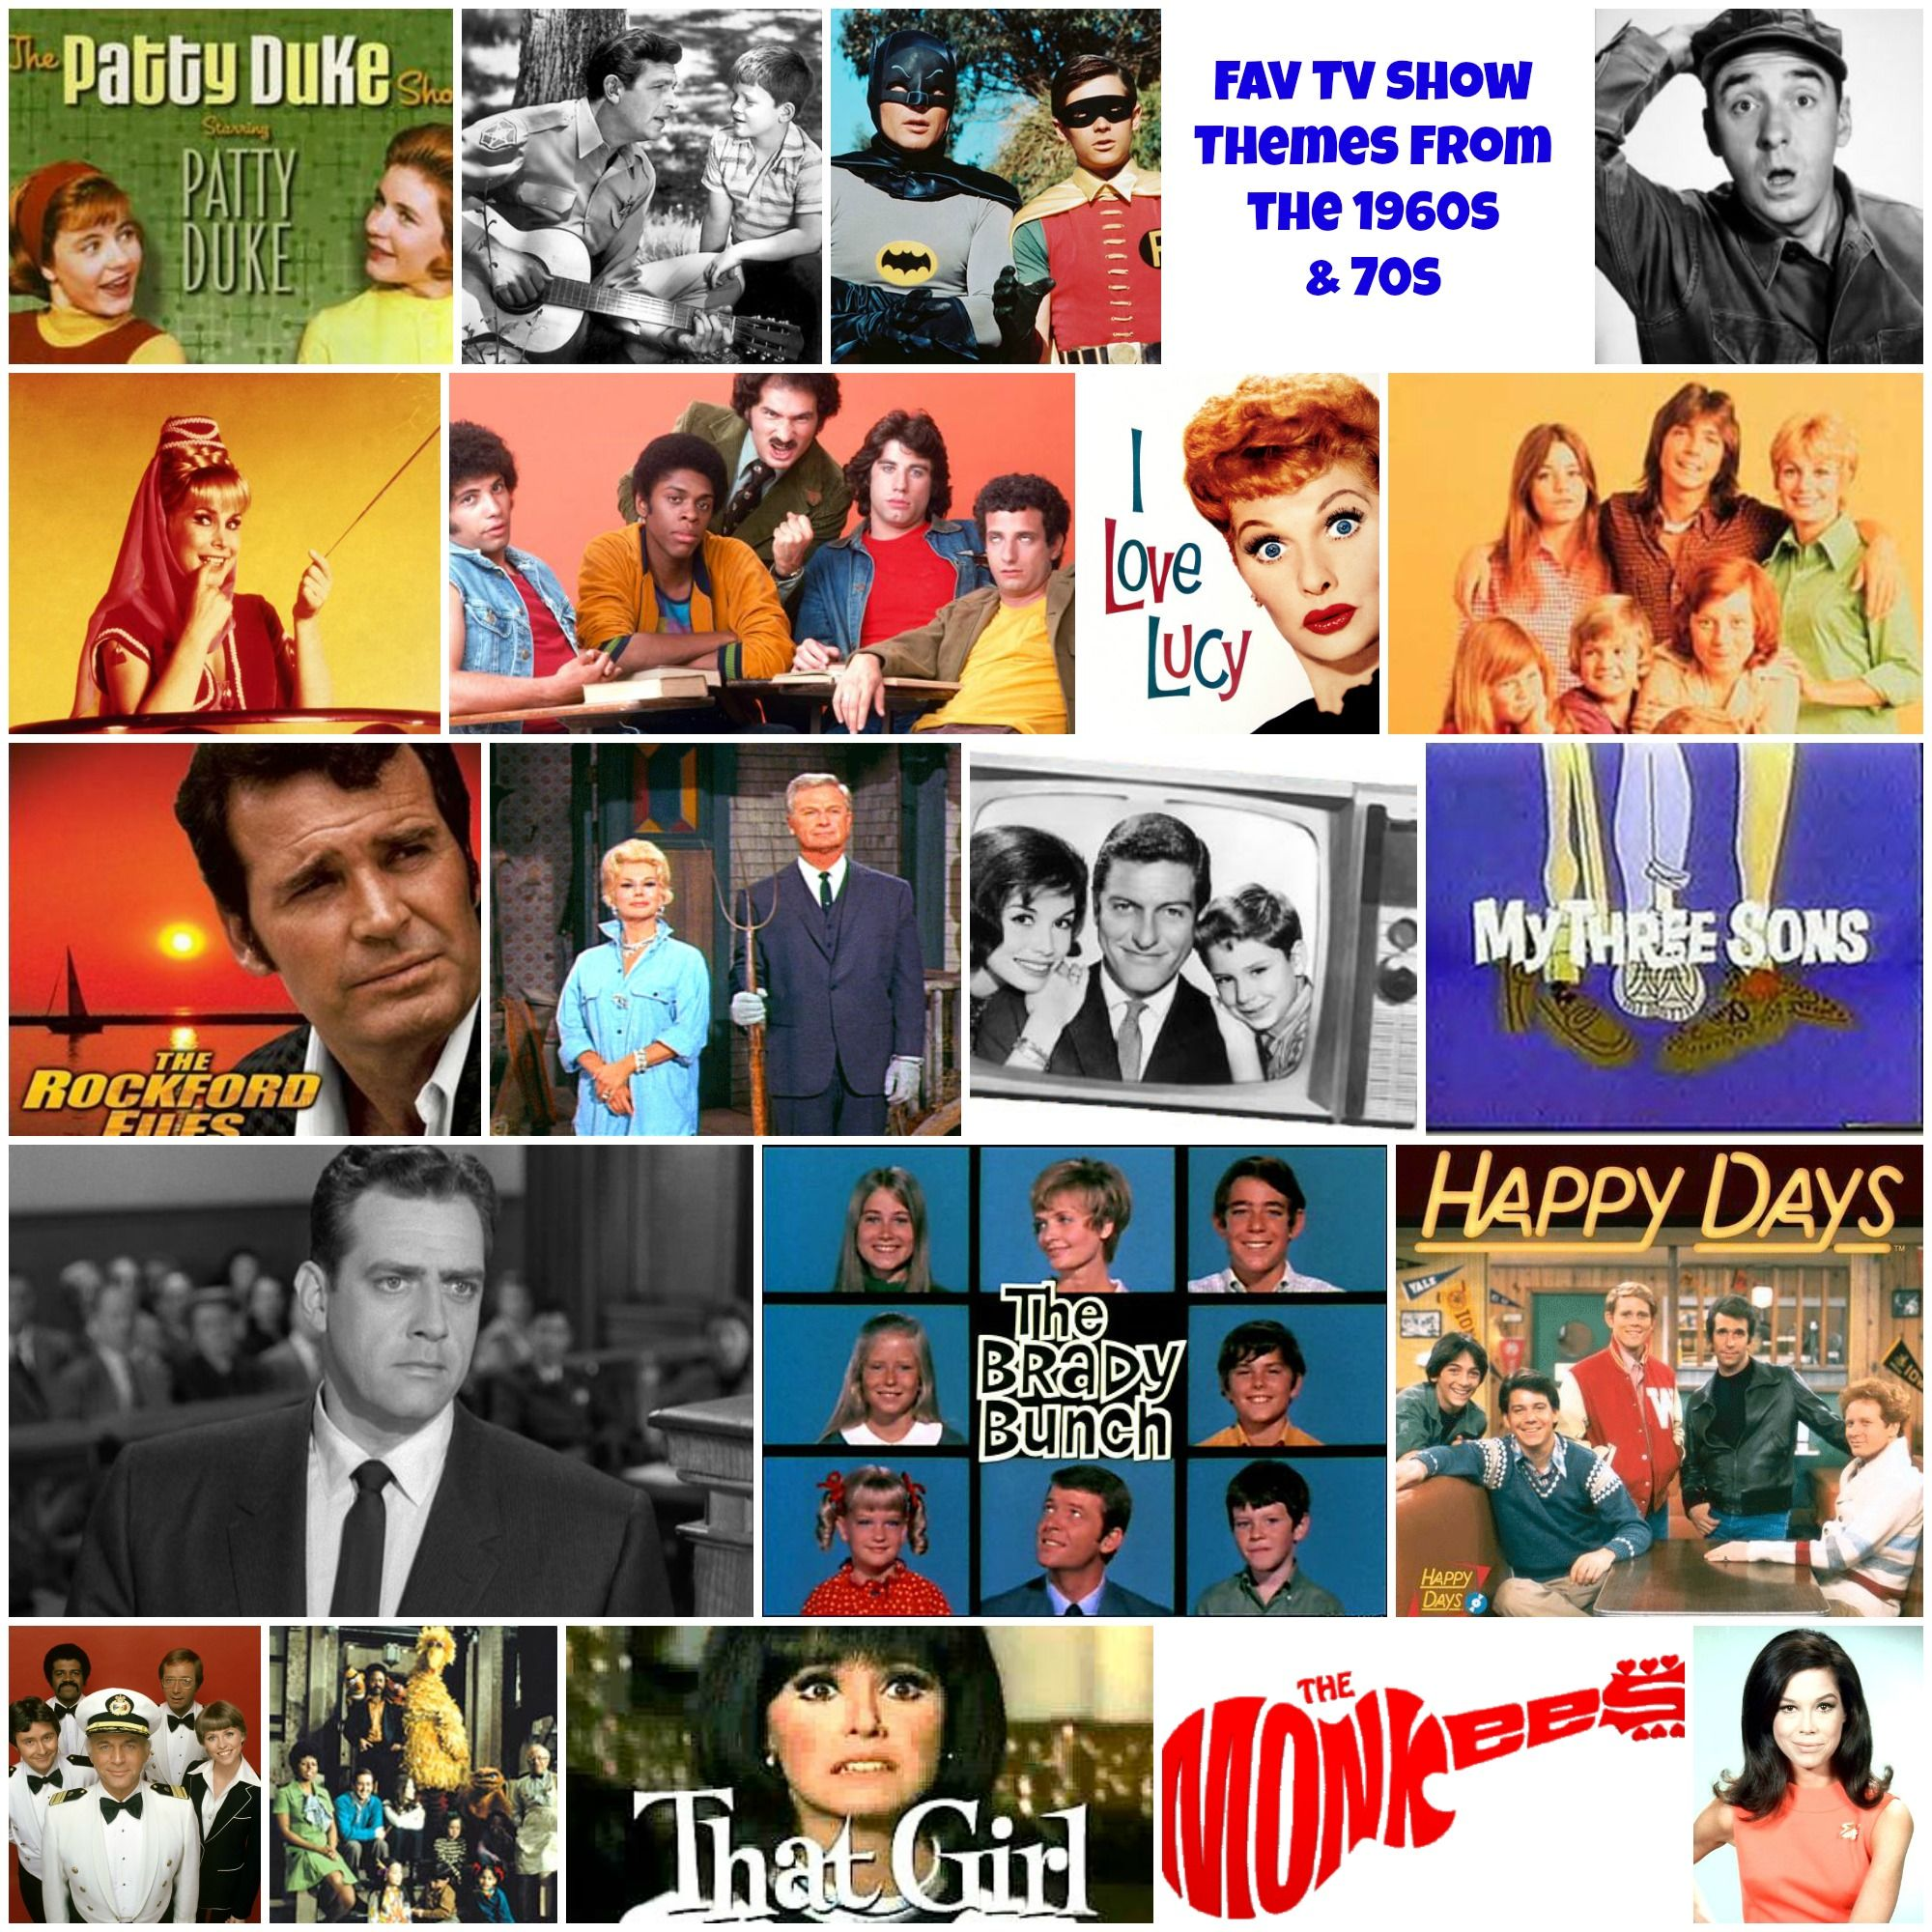 TV theme songs of the 1970s | Jeanie Rhoades // Thought Collage | Tv theme  songs, Tv themes, 1960s tv shows